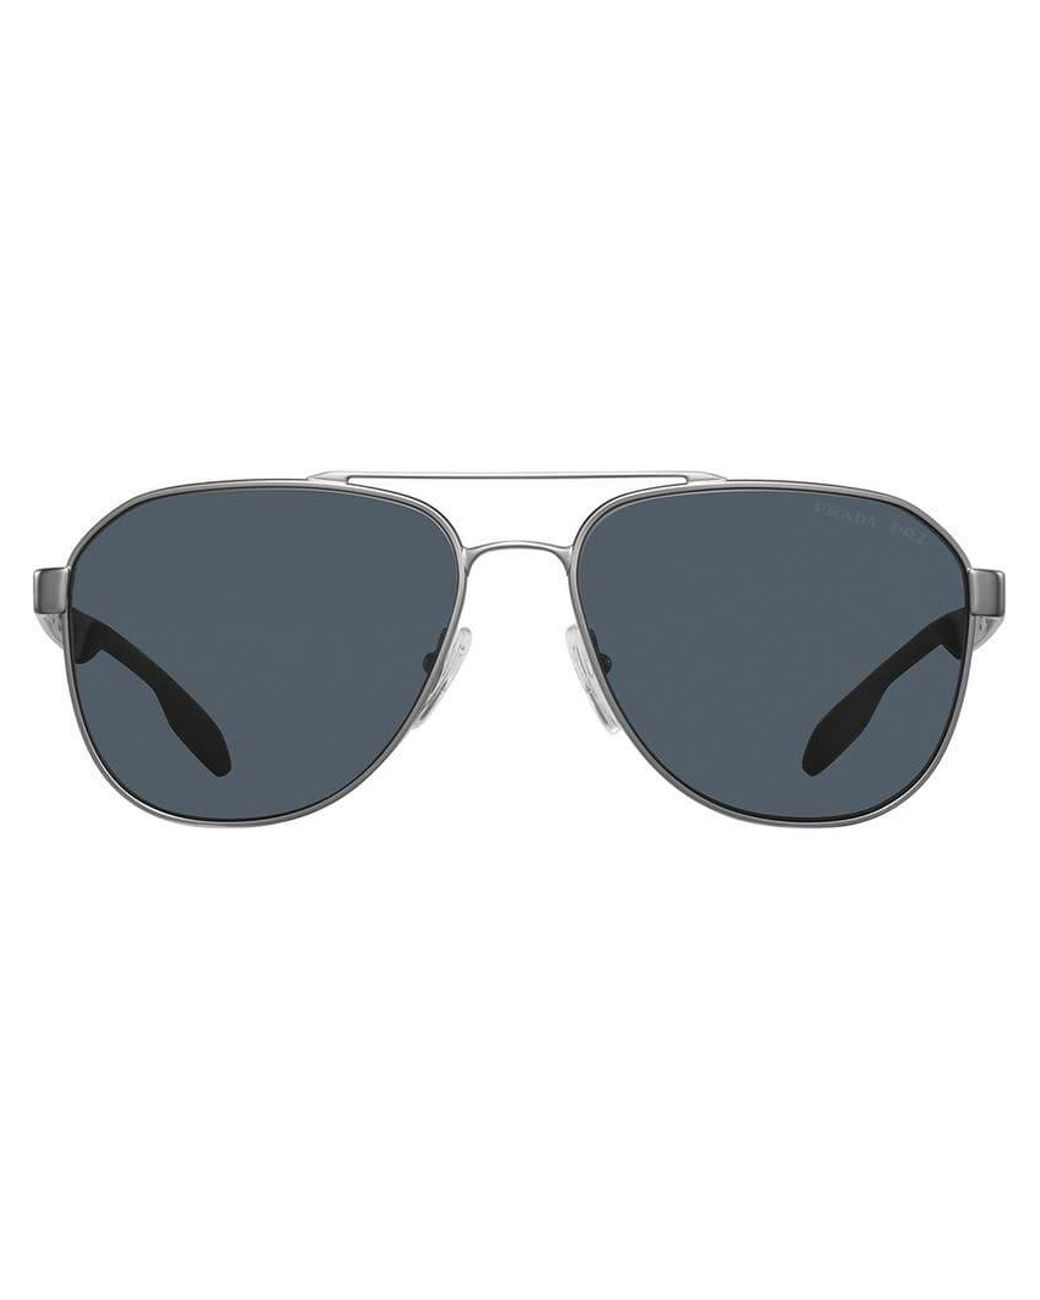 c64c4652ac7f Lyst - Prada Aviator Sunglasses in Metallic for Men